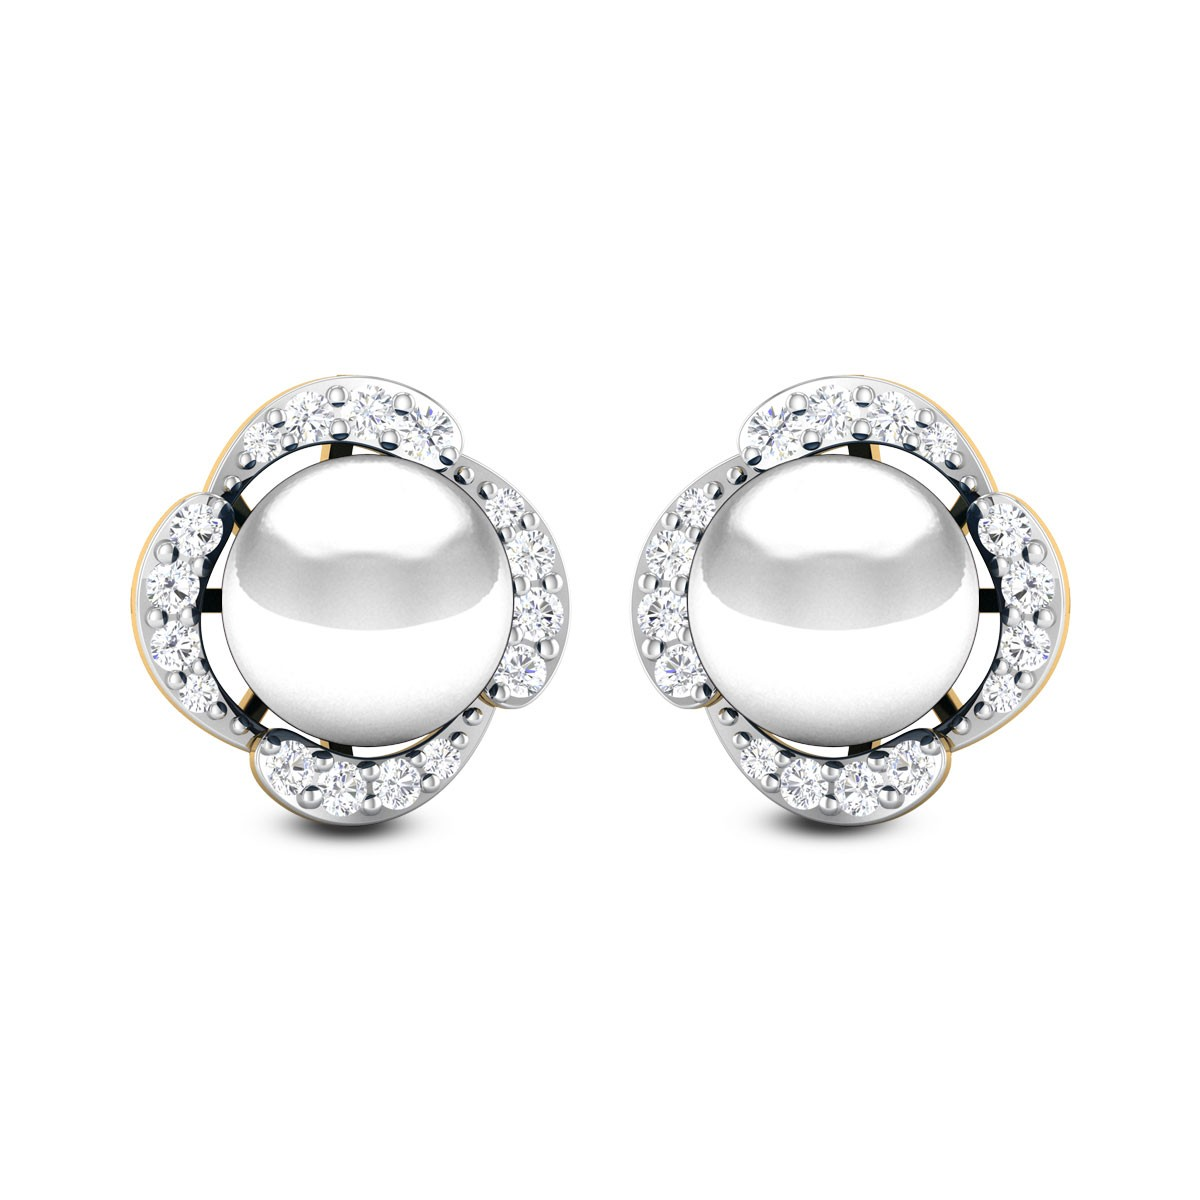 Anagi Pearl Stud Earrings